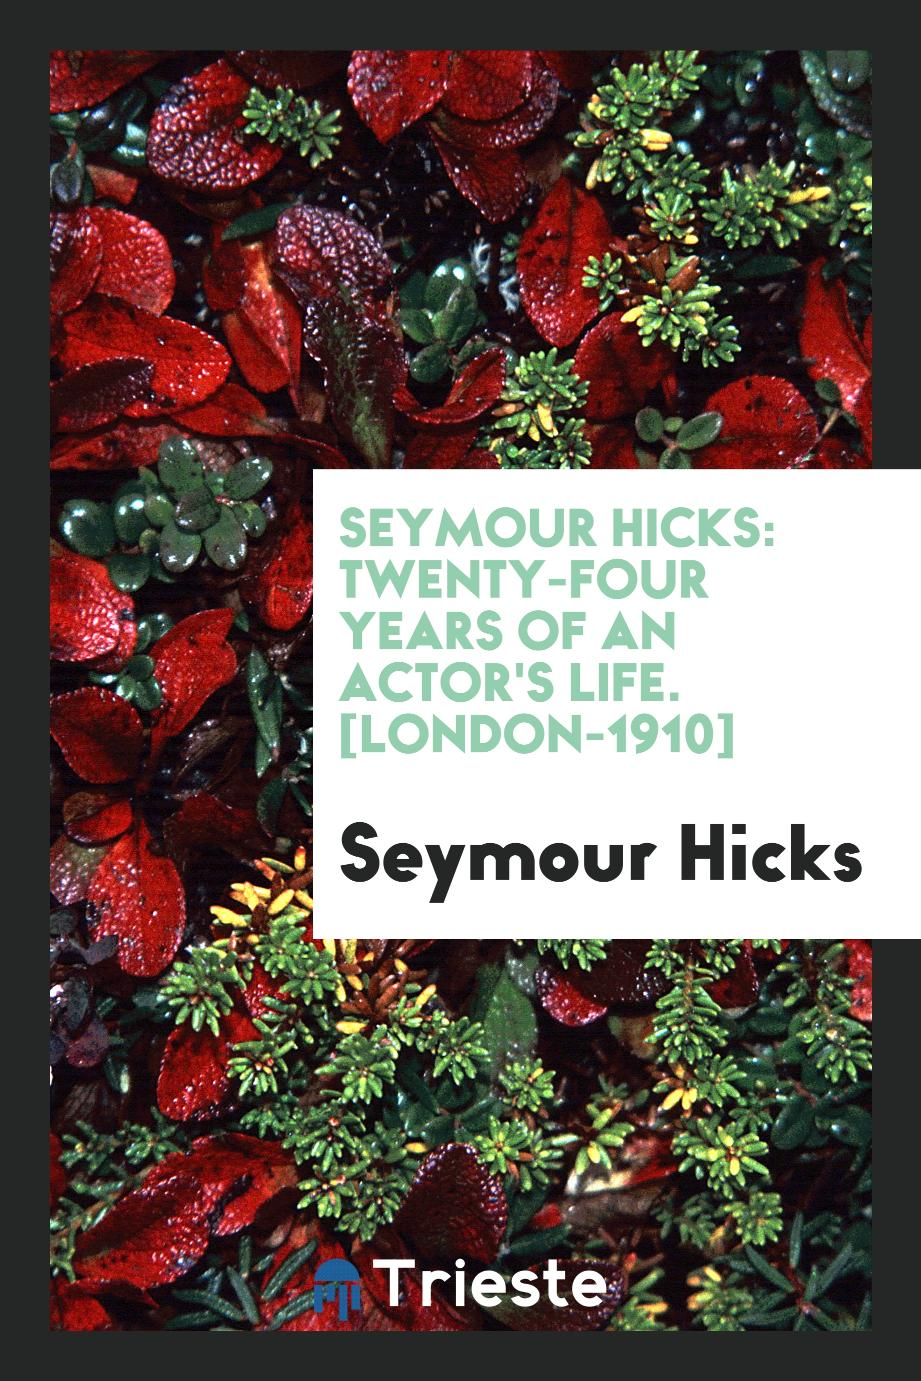 Seymour Hicks: Twenty-Four Years of an Actor's Life. [London-1910]